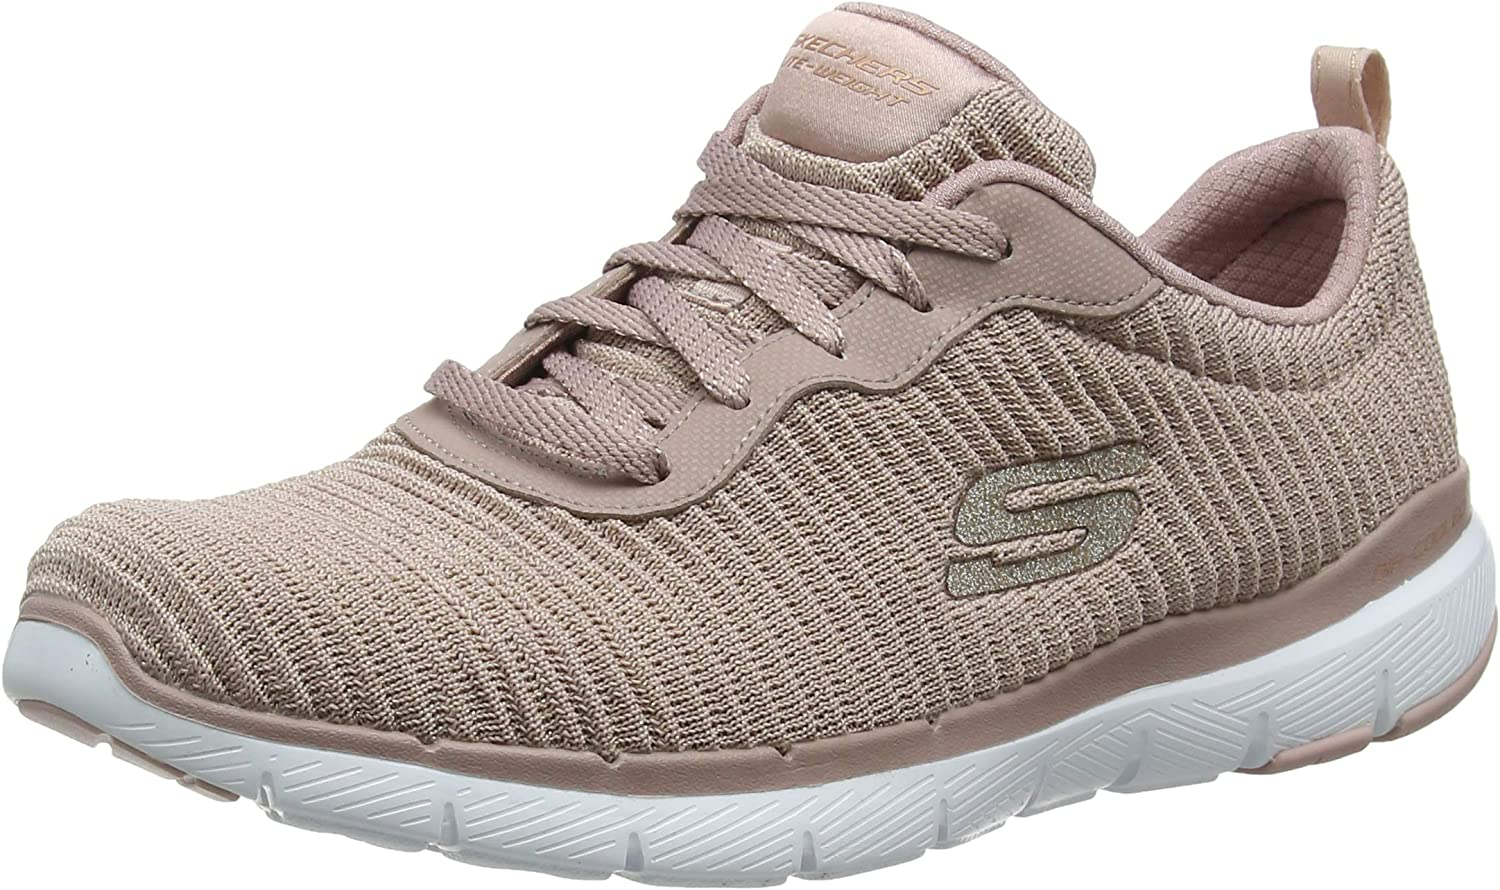 Skechers Womens Flex Appeal 3.0 Sneaker